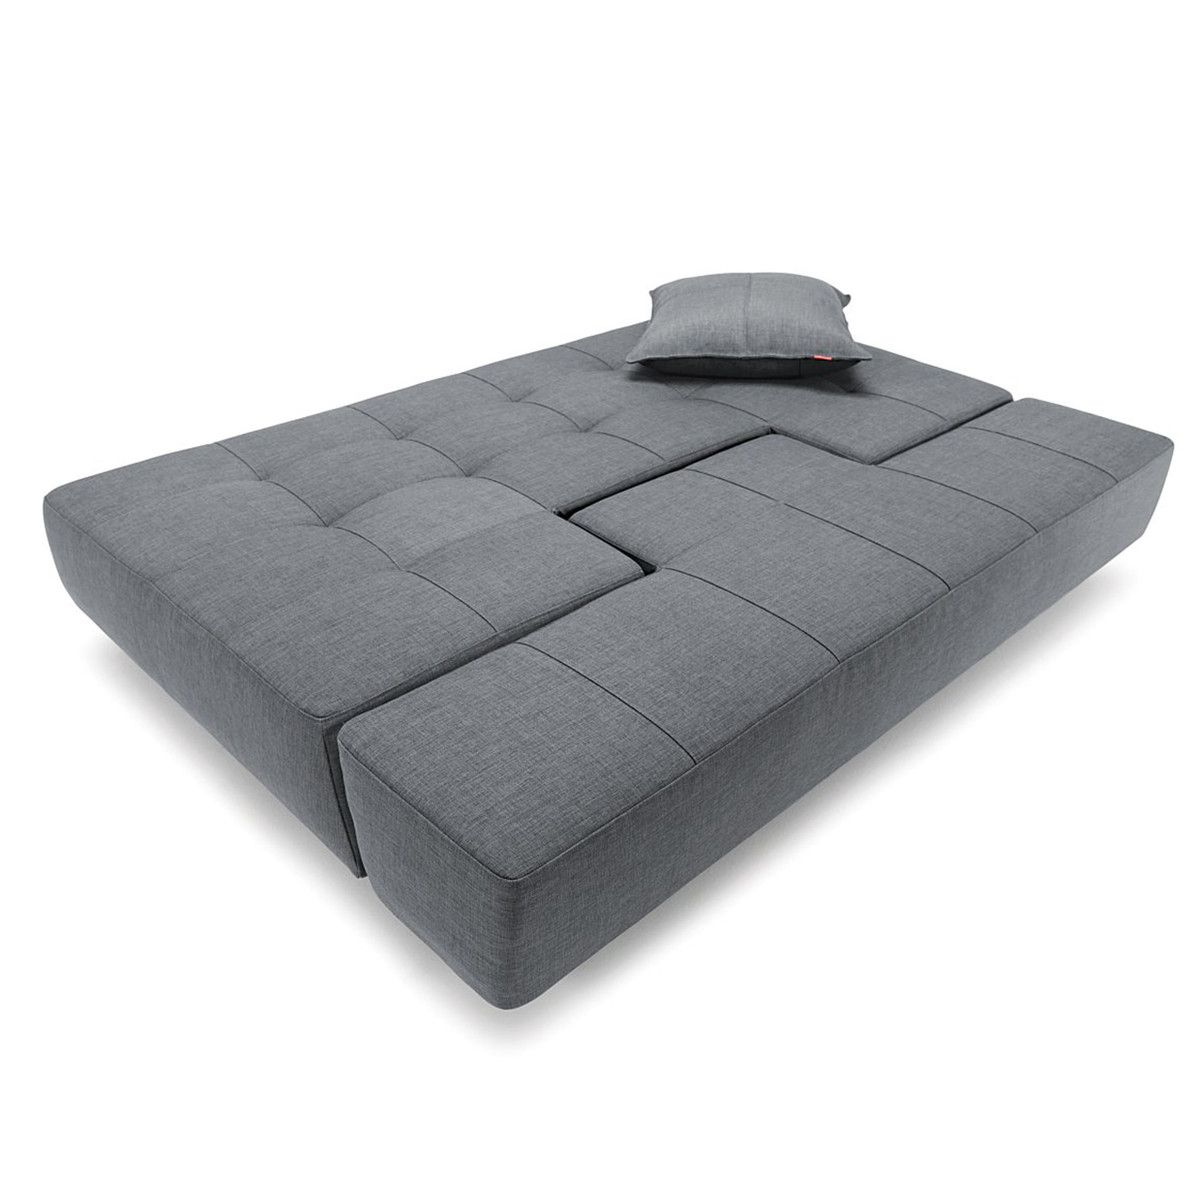 So Cool A Sofa That Folds Down Into A Full Size Bed